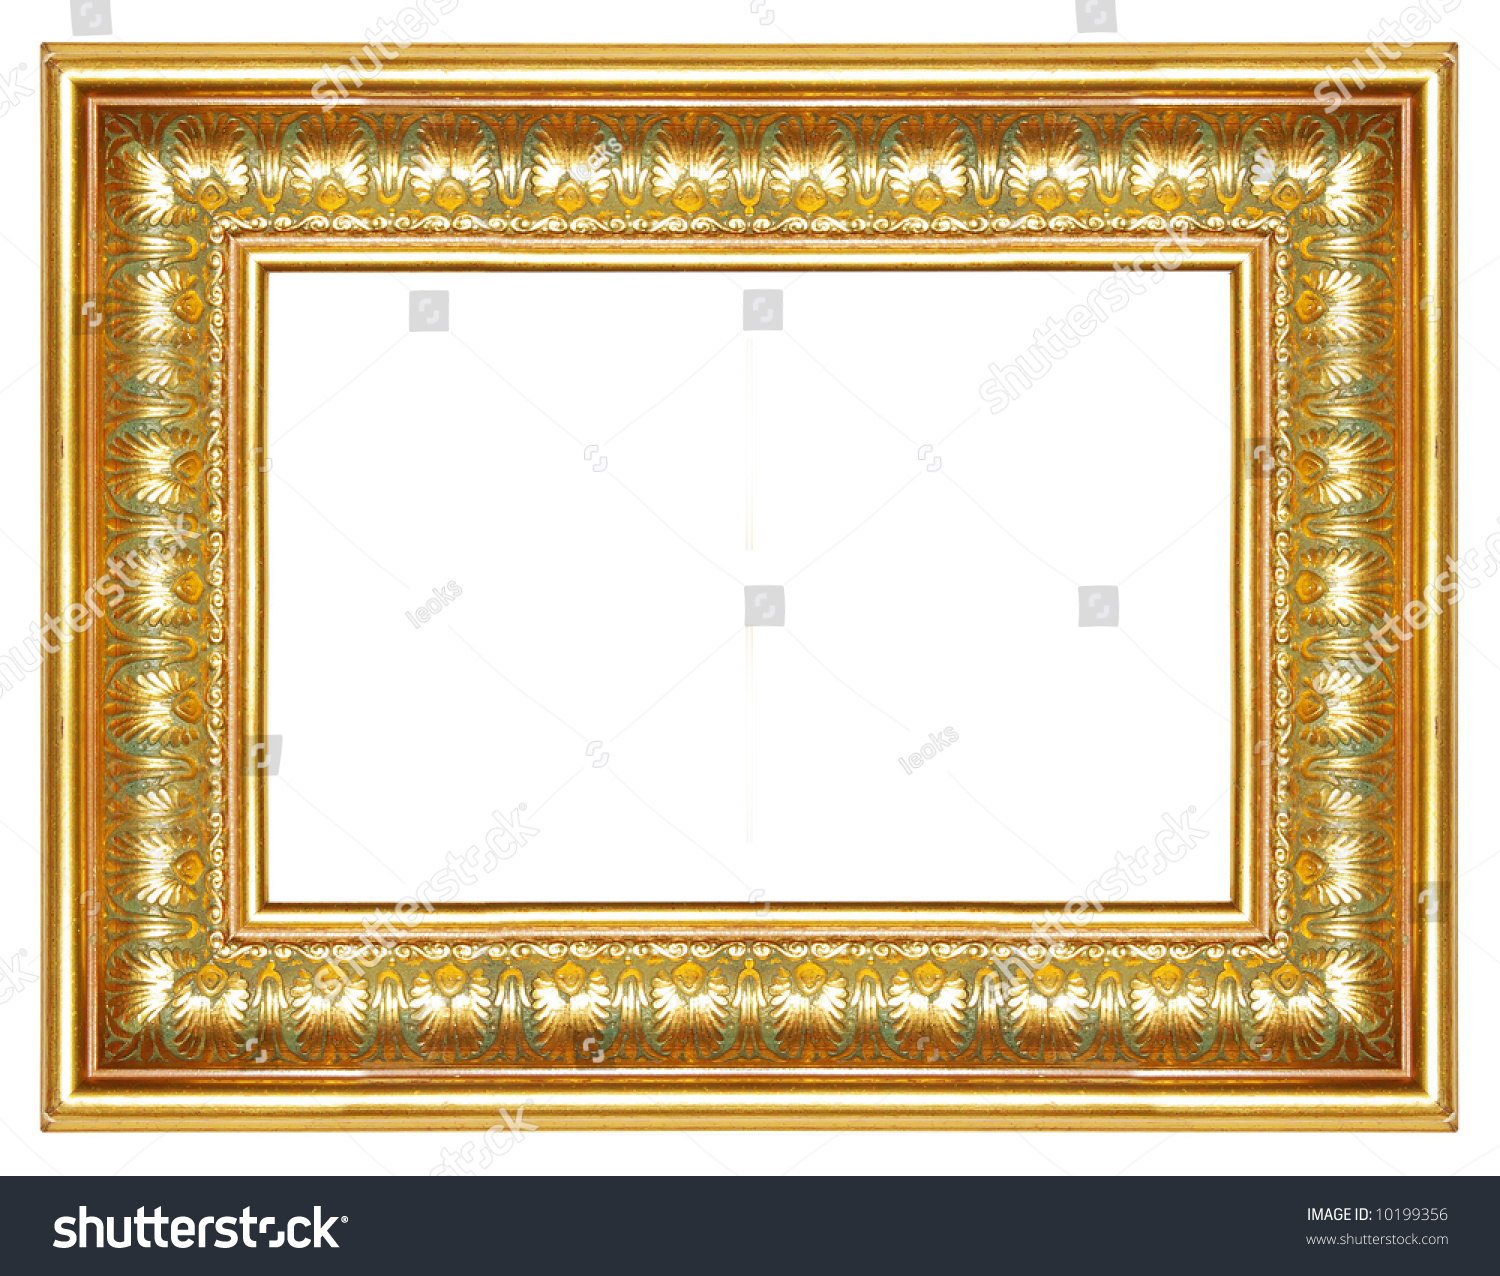 gilded frame with egyptian ornament more frames in my gallery